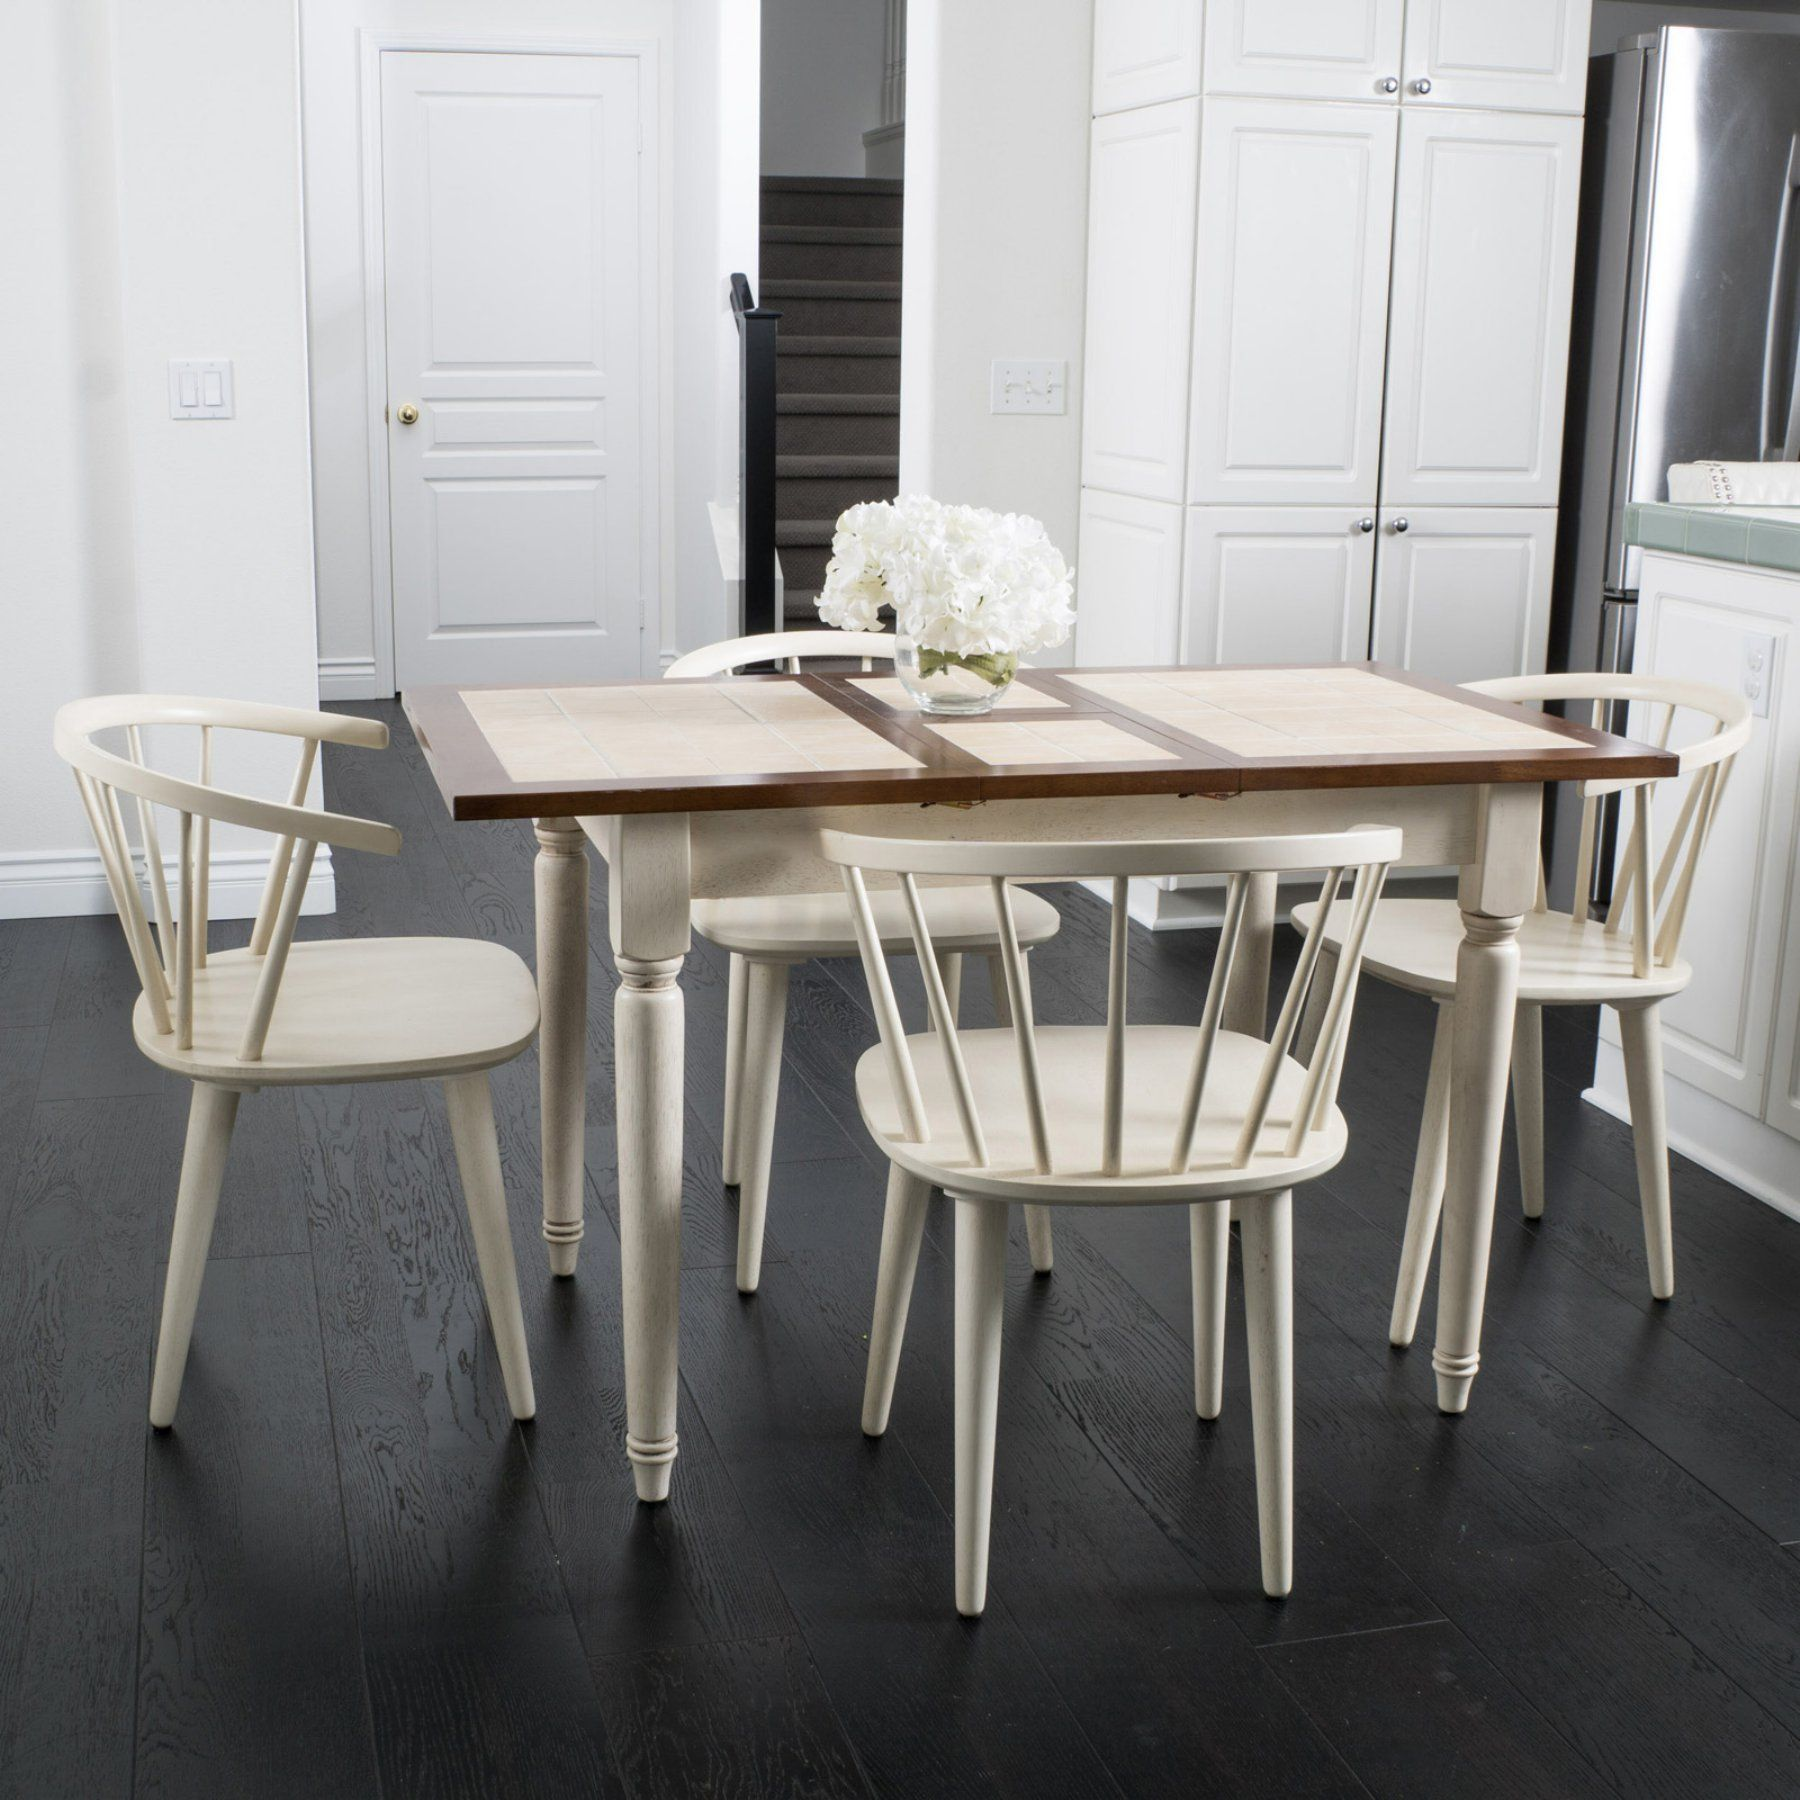 Best Selling Home 5 Piece Rectangular Dining Table Set Antique